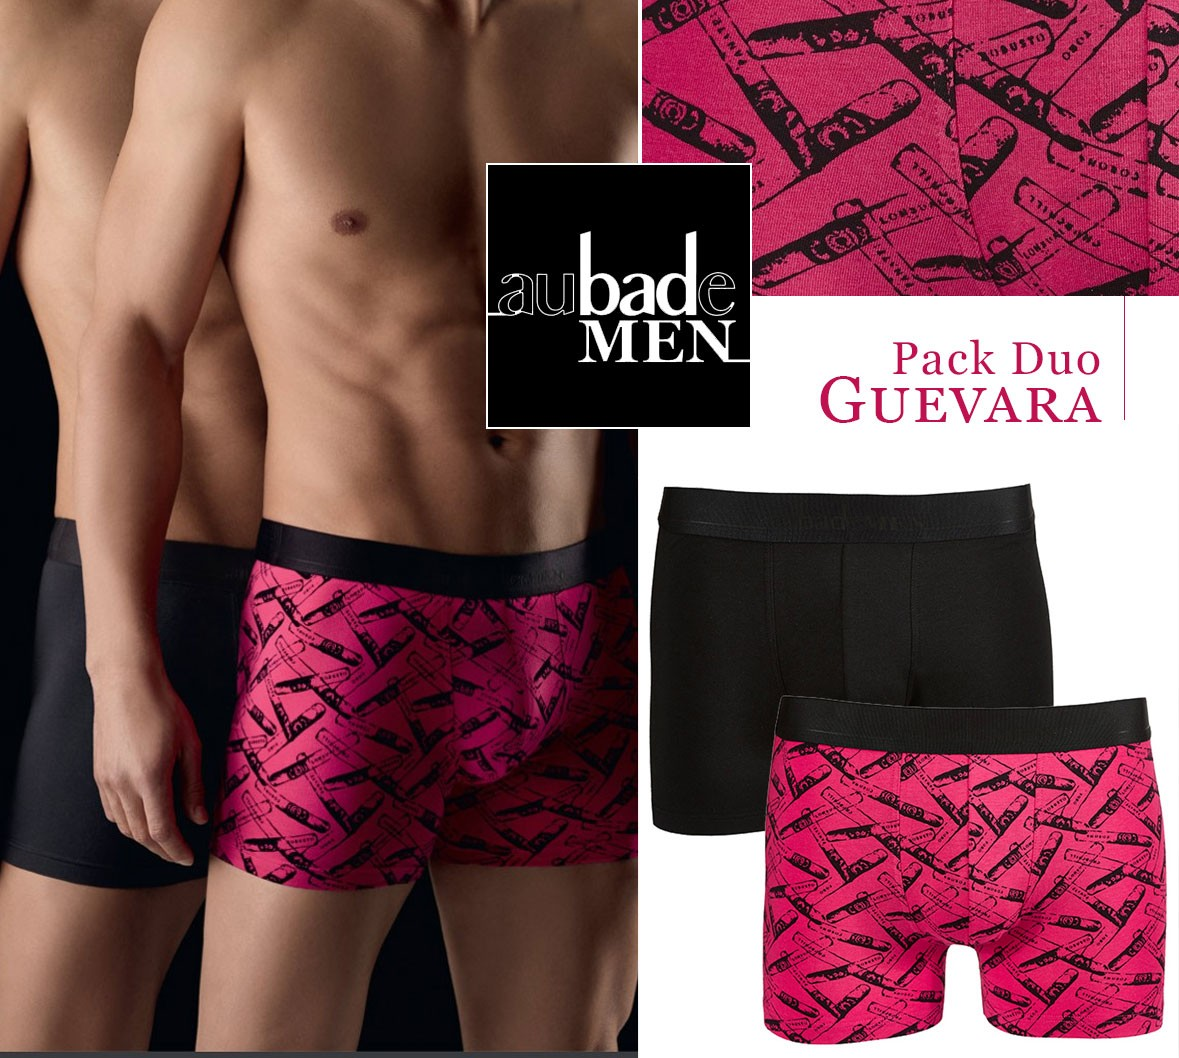 Aubade Men Guevara pack duo Boxer